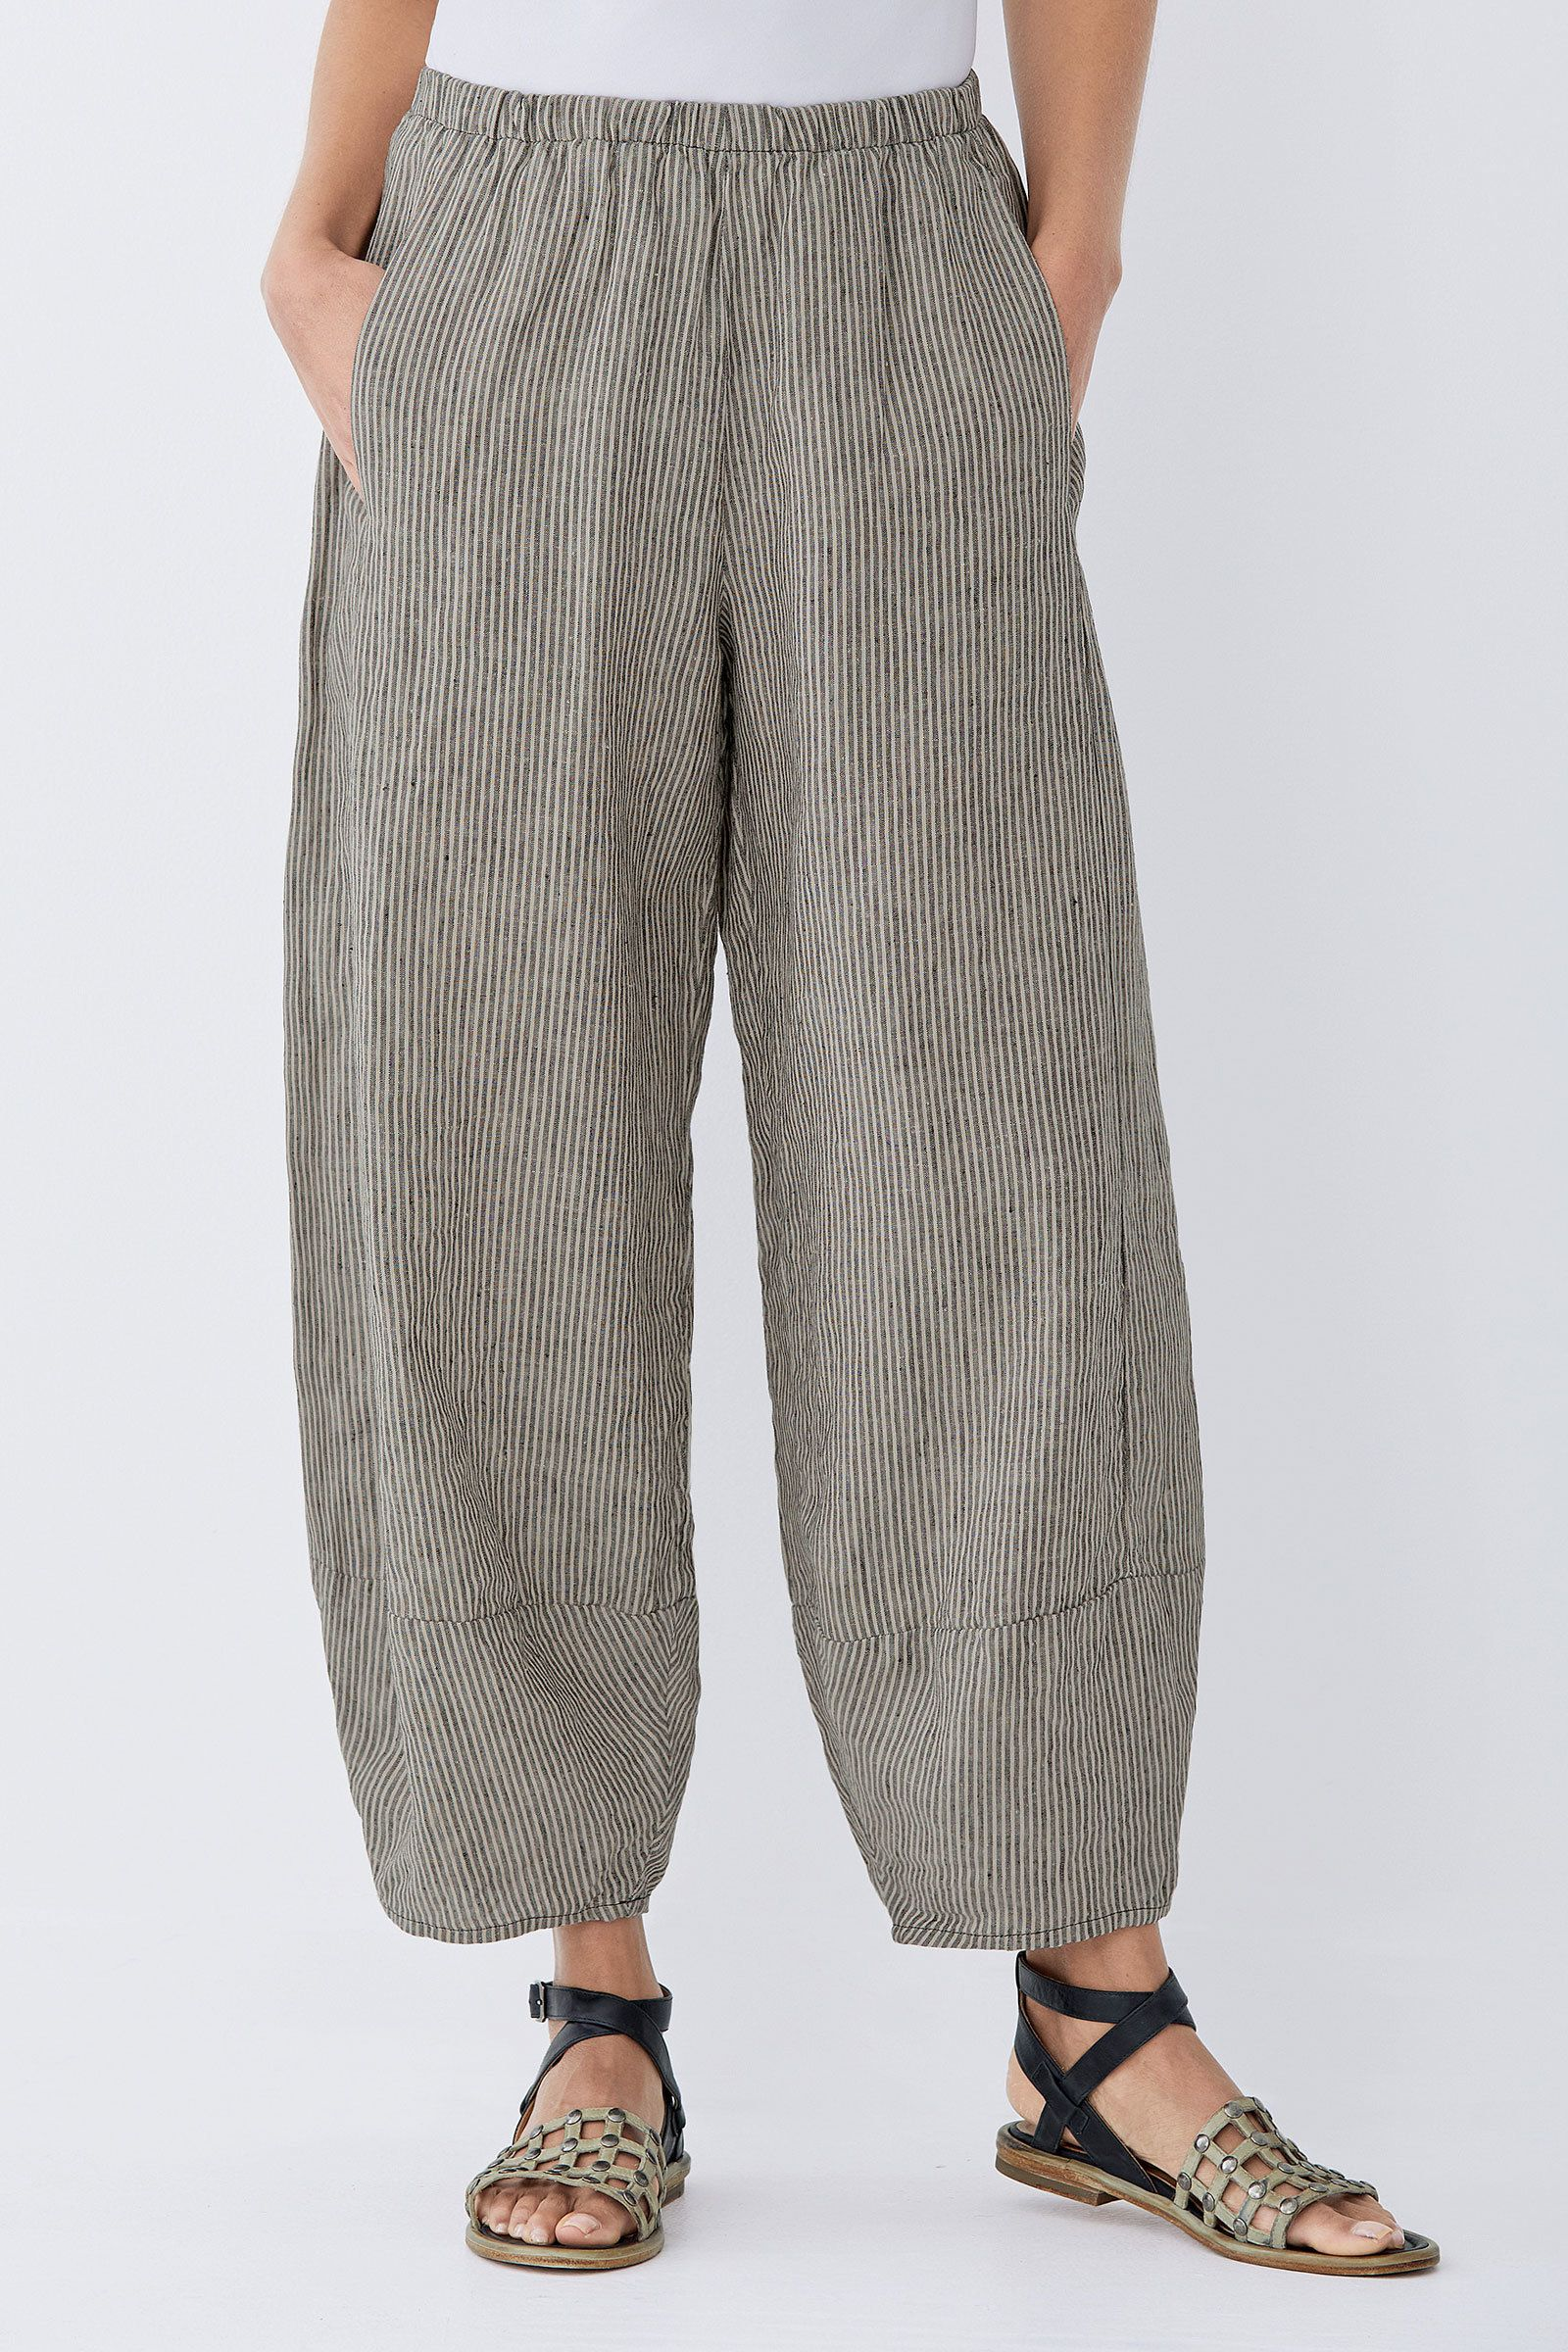 028cba3a2919d Linen Lantern Pant by Lisa Bayne . Beloved for its easy fit and distinctive  lantern shaping